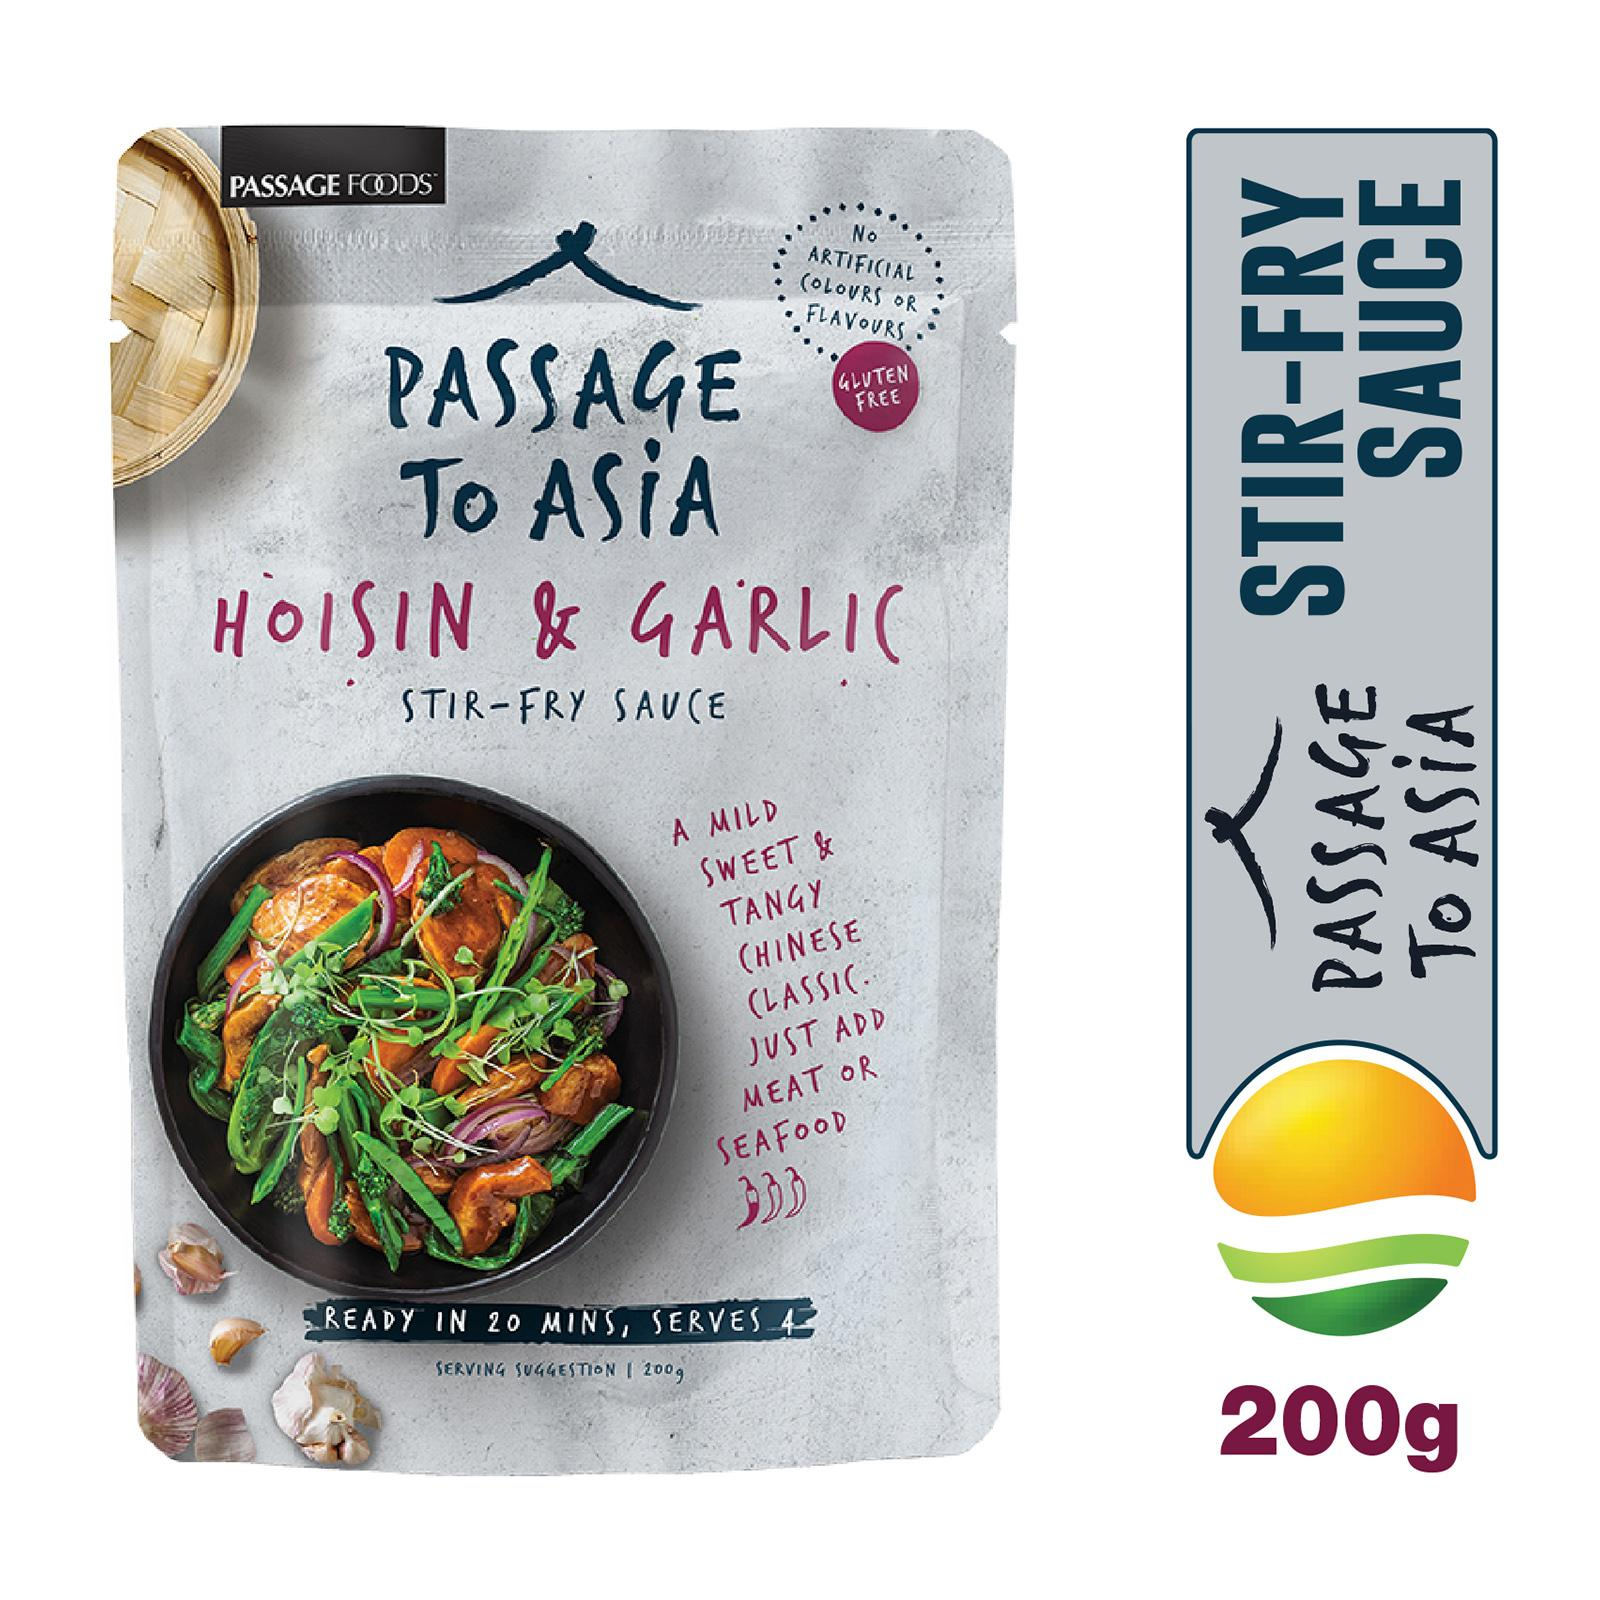 Passage Foods Passage to Asia - Hoisin and Garlic Stir Fry Sauce - By Sonnamera